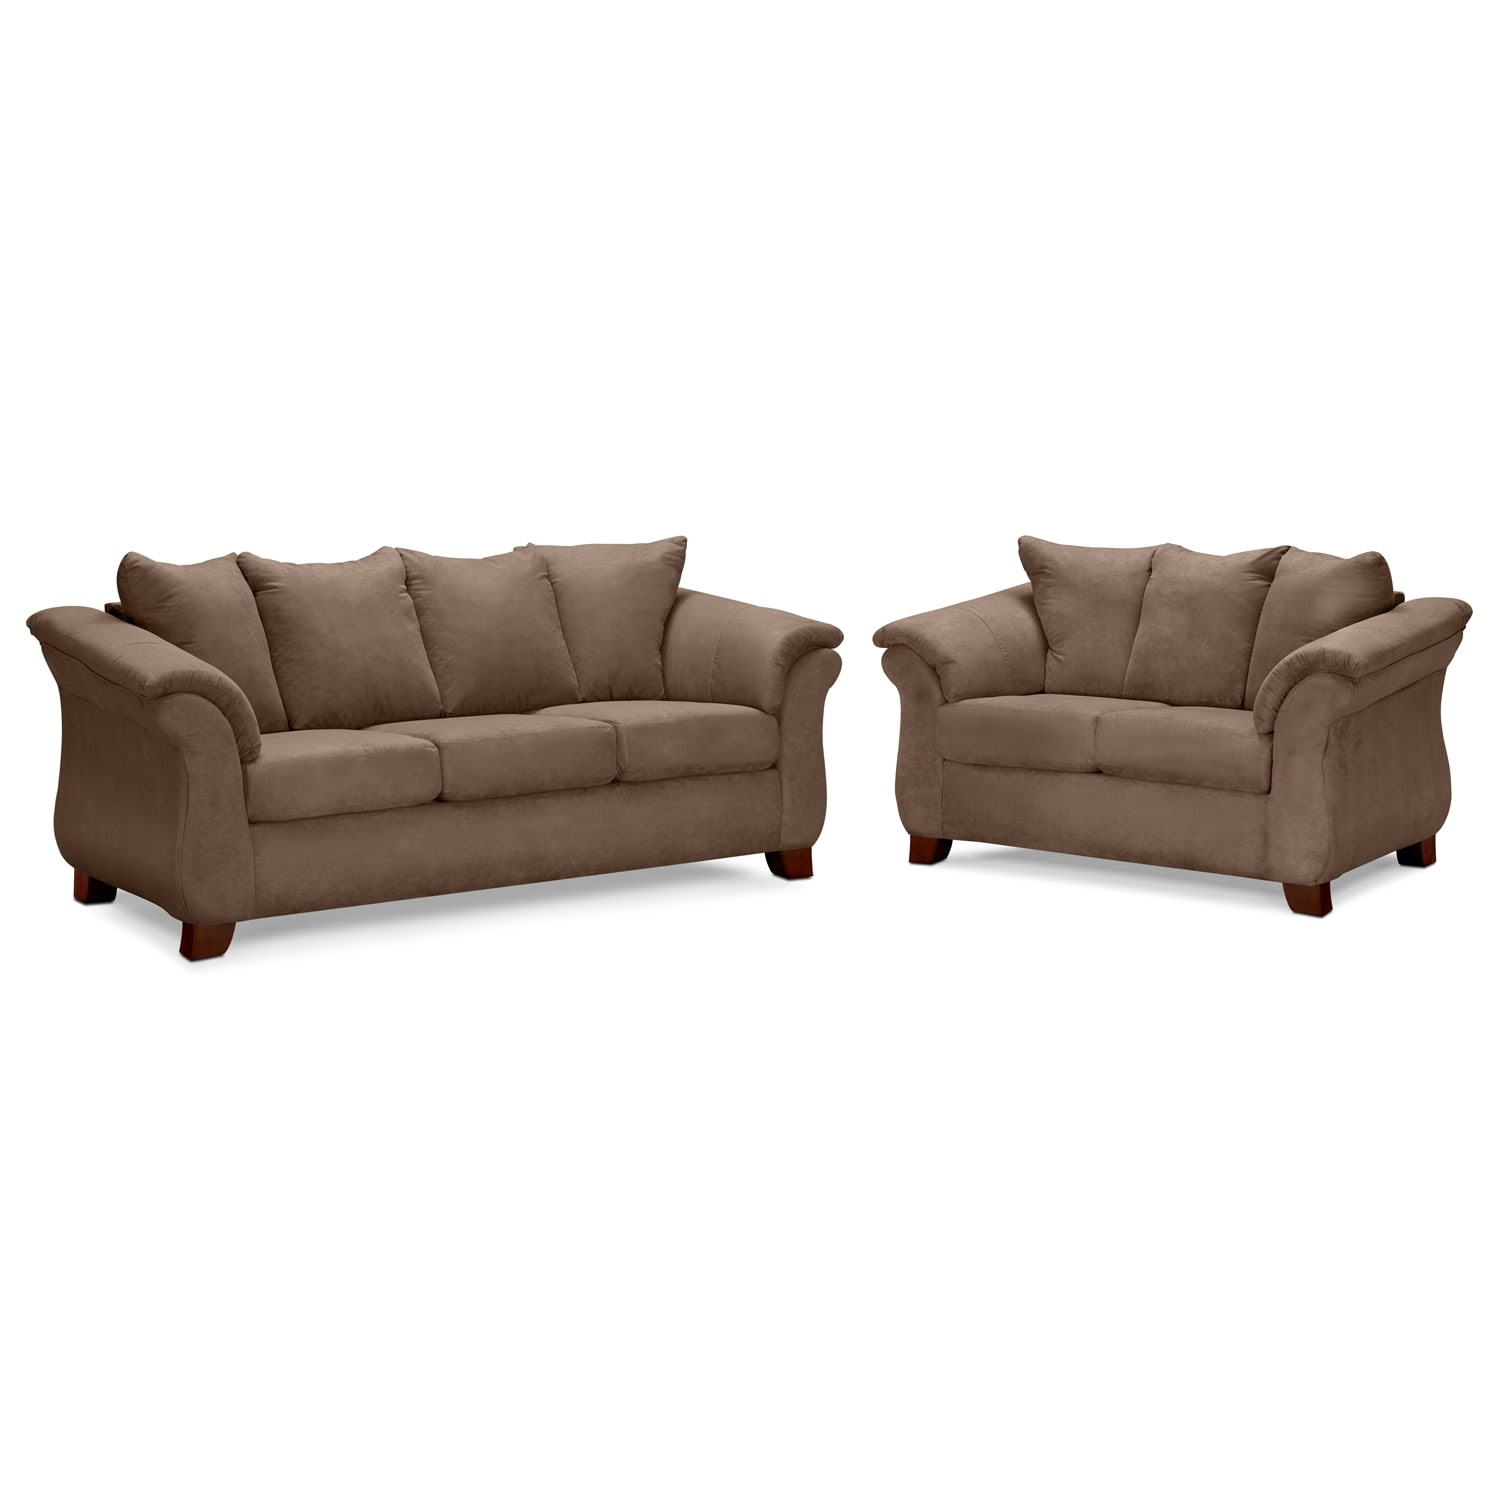 Adrian Taupe 2 Pc. Living Room | Value City Furniture